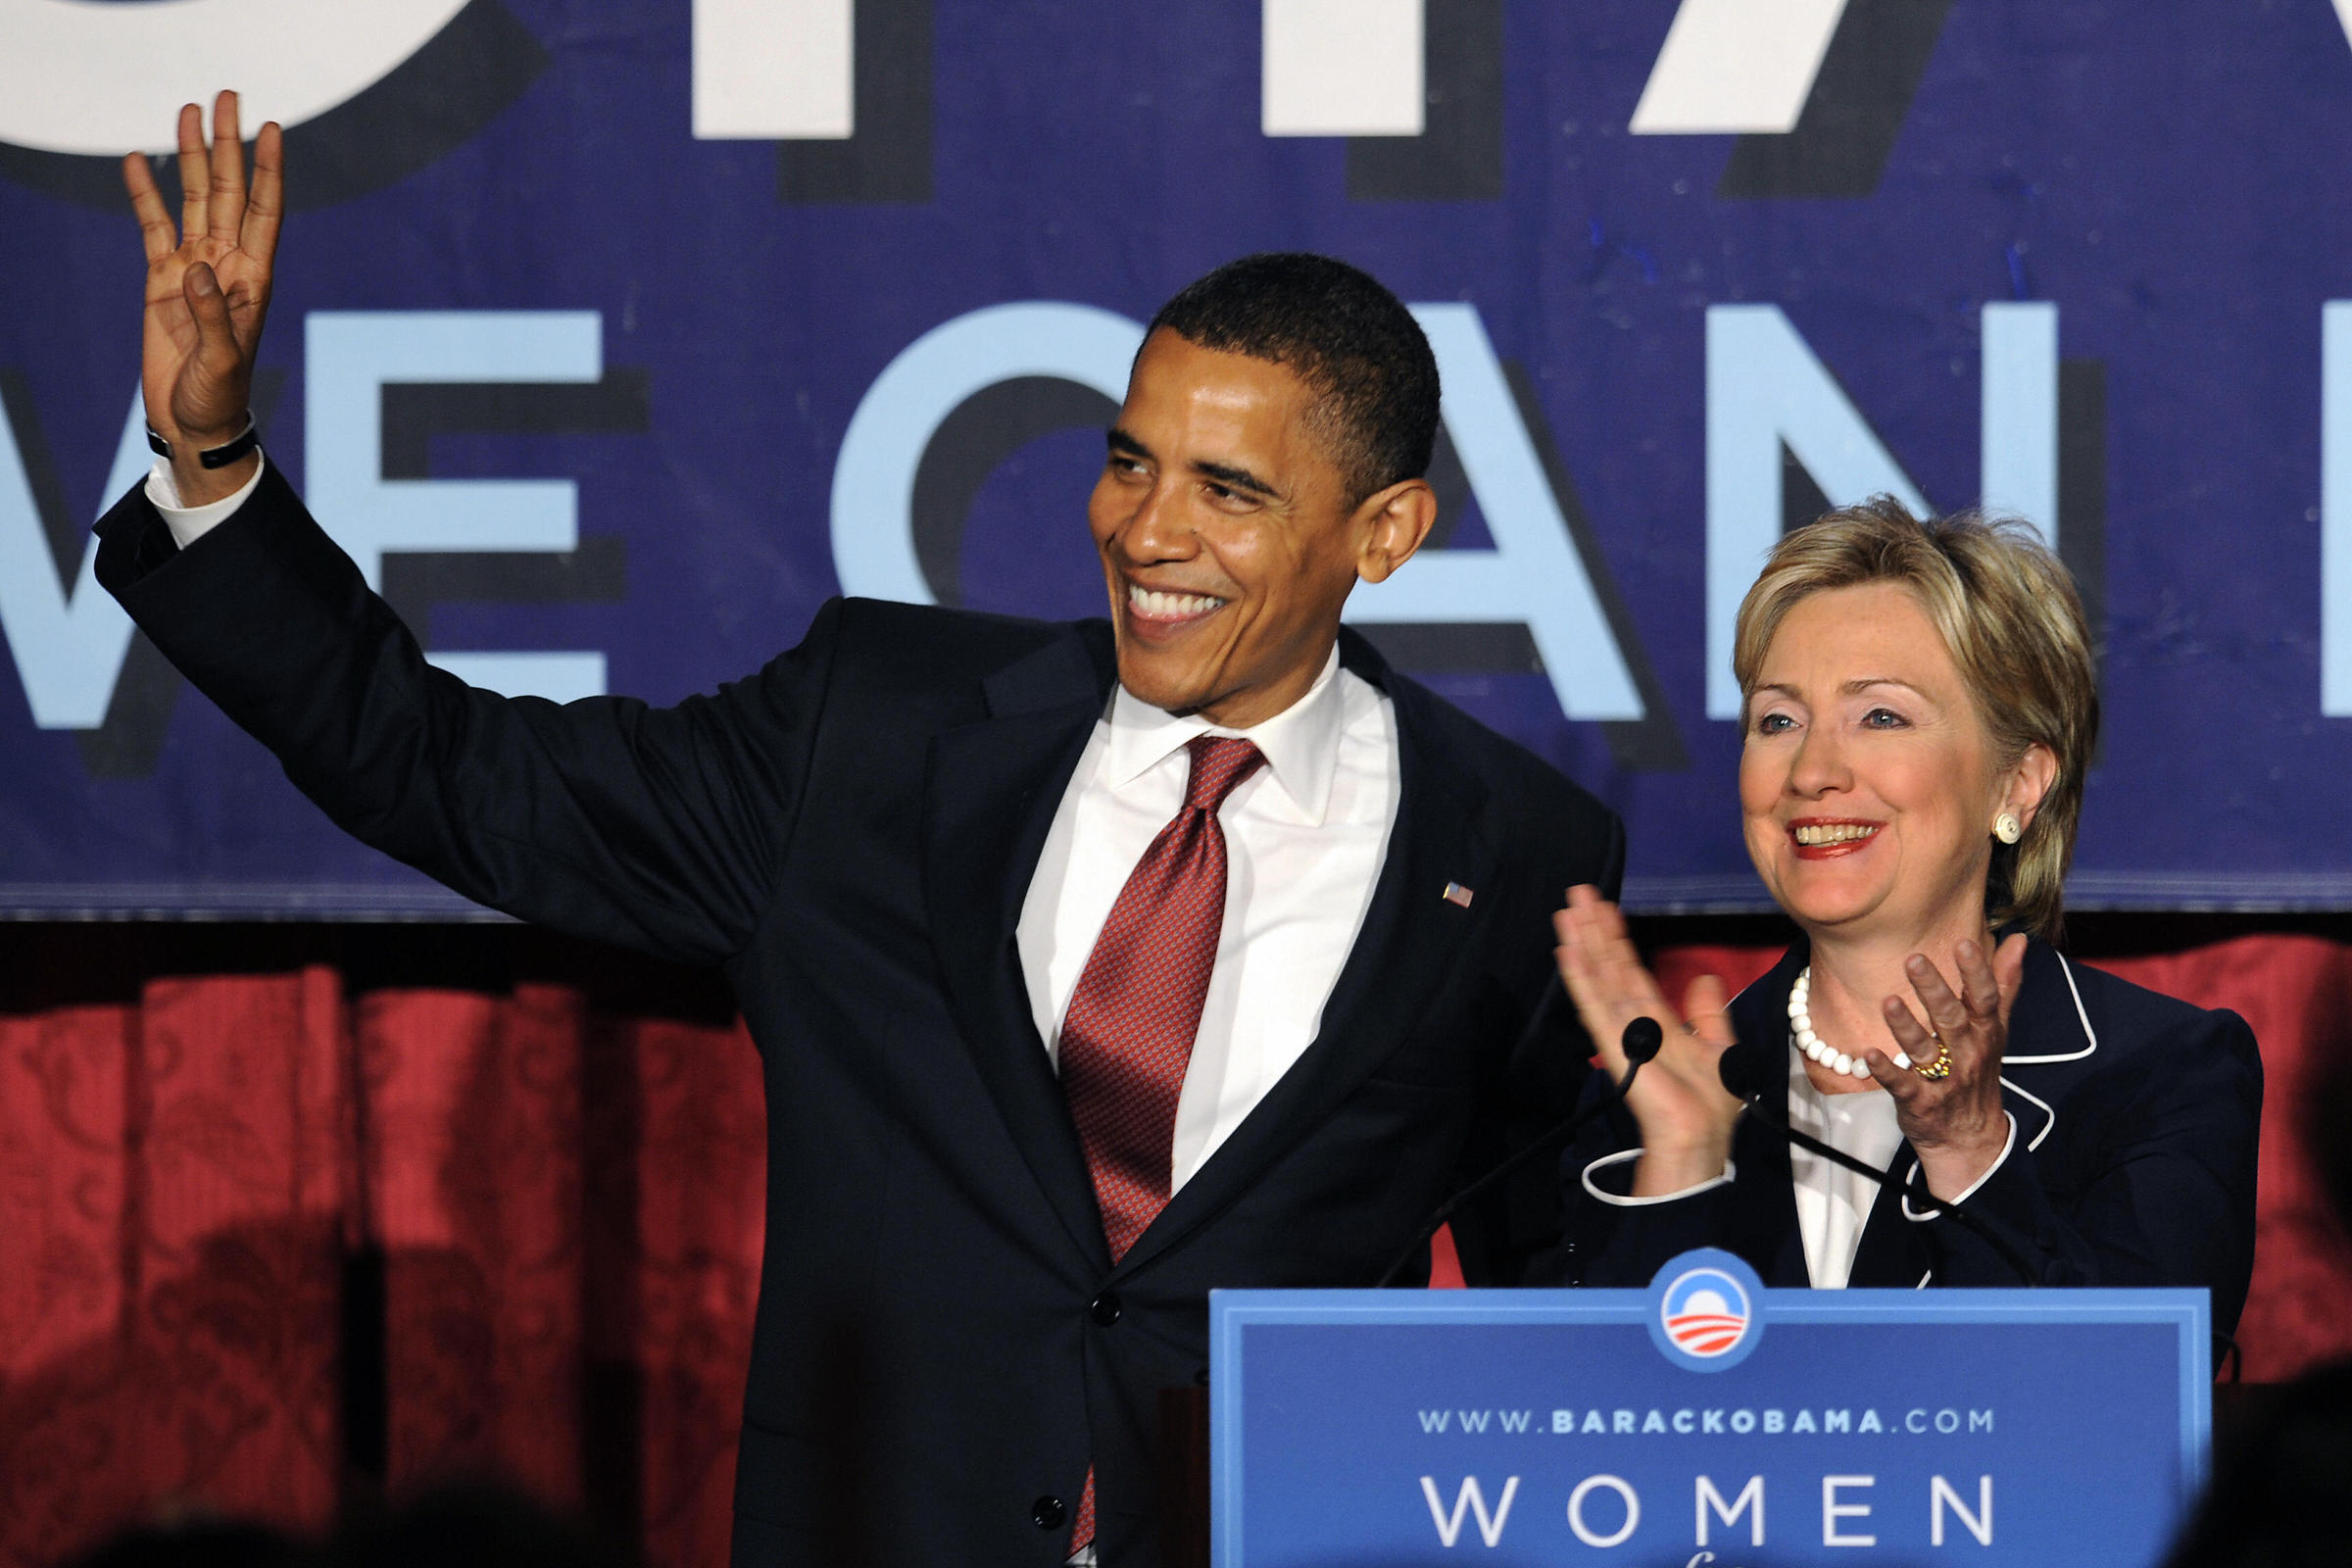 barack obama and the democratic party essay An original and engaging account of the obama years from a group of leading   election, obama's legacy and the health of the democratic party itself  together , these essays suggest that obama's central paradox is that,.